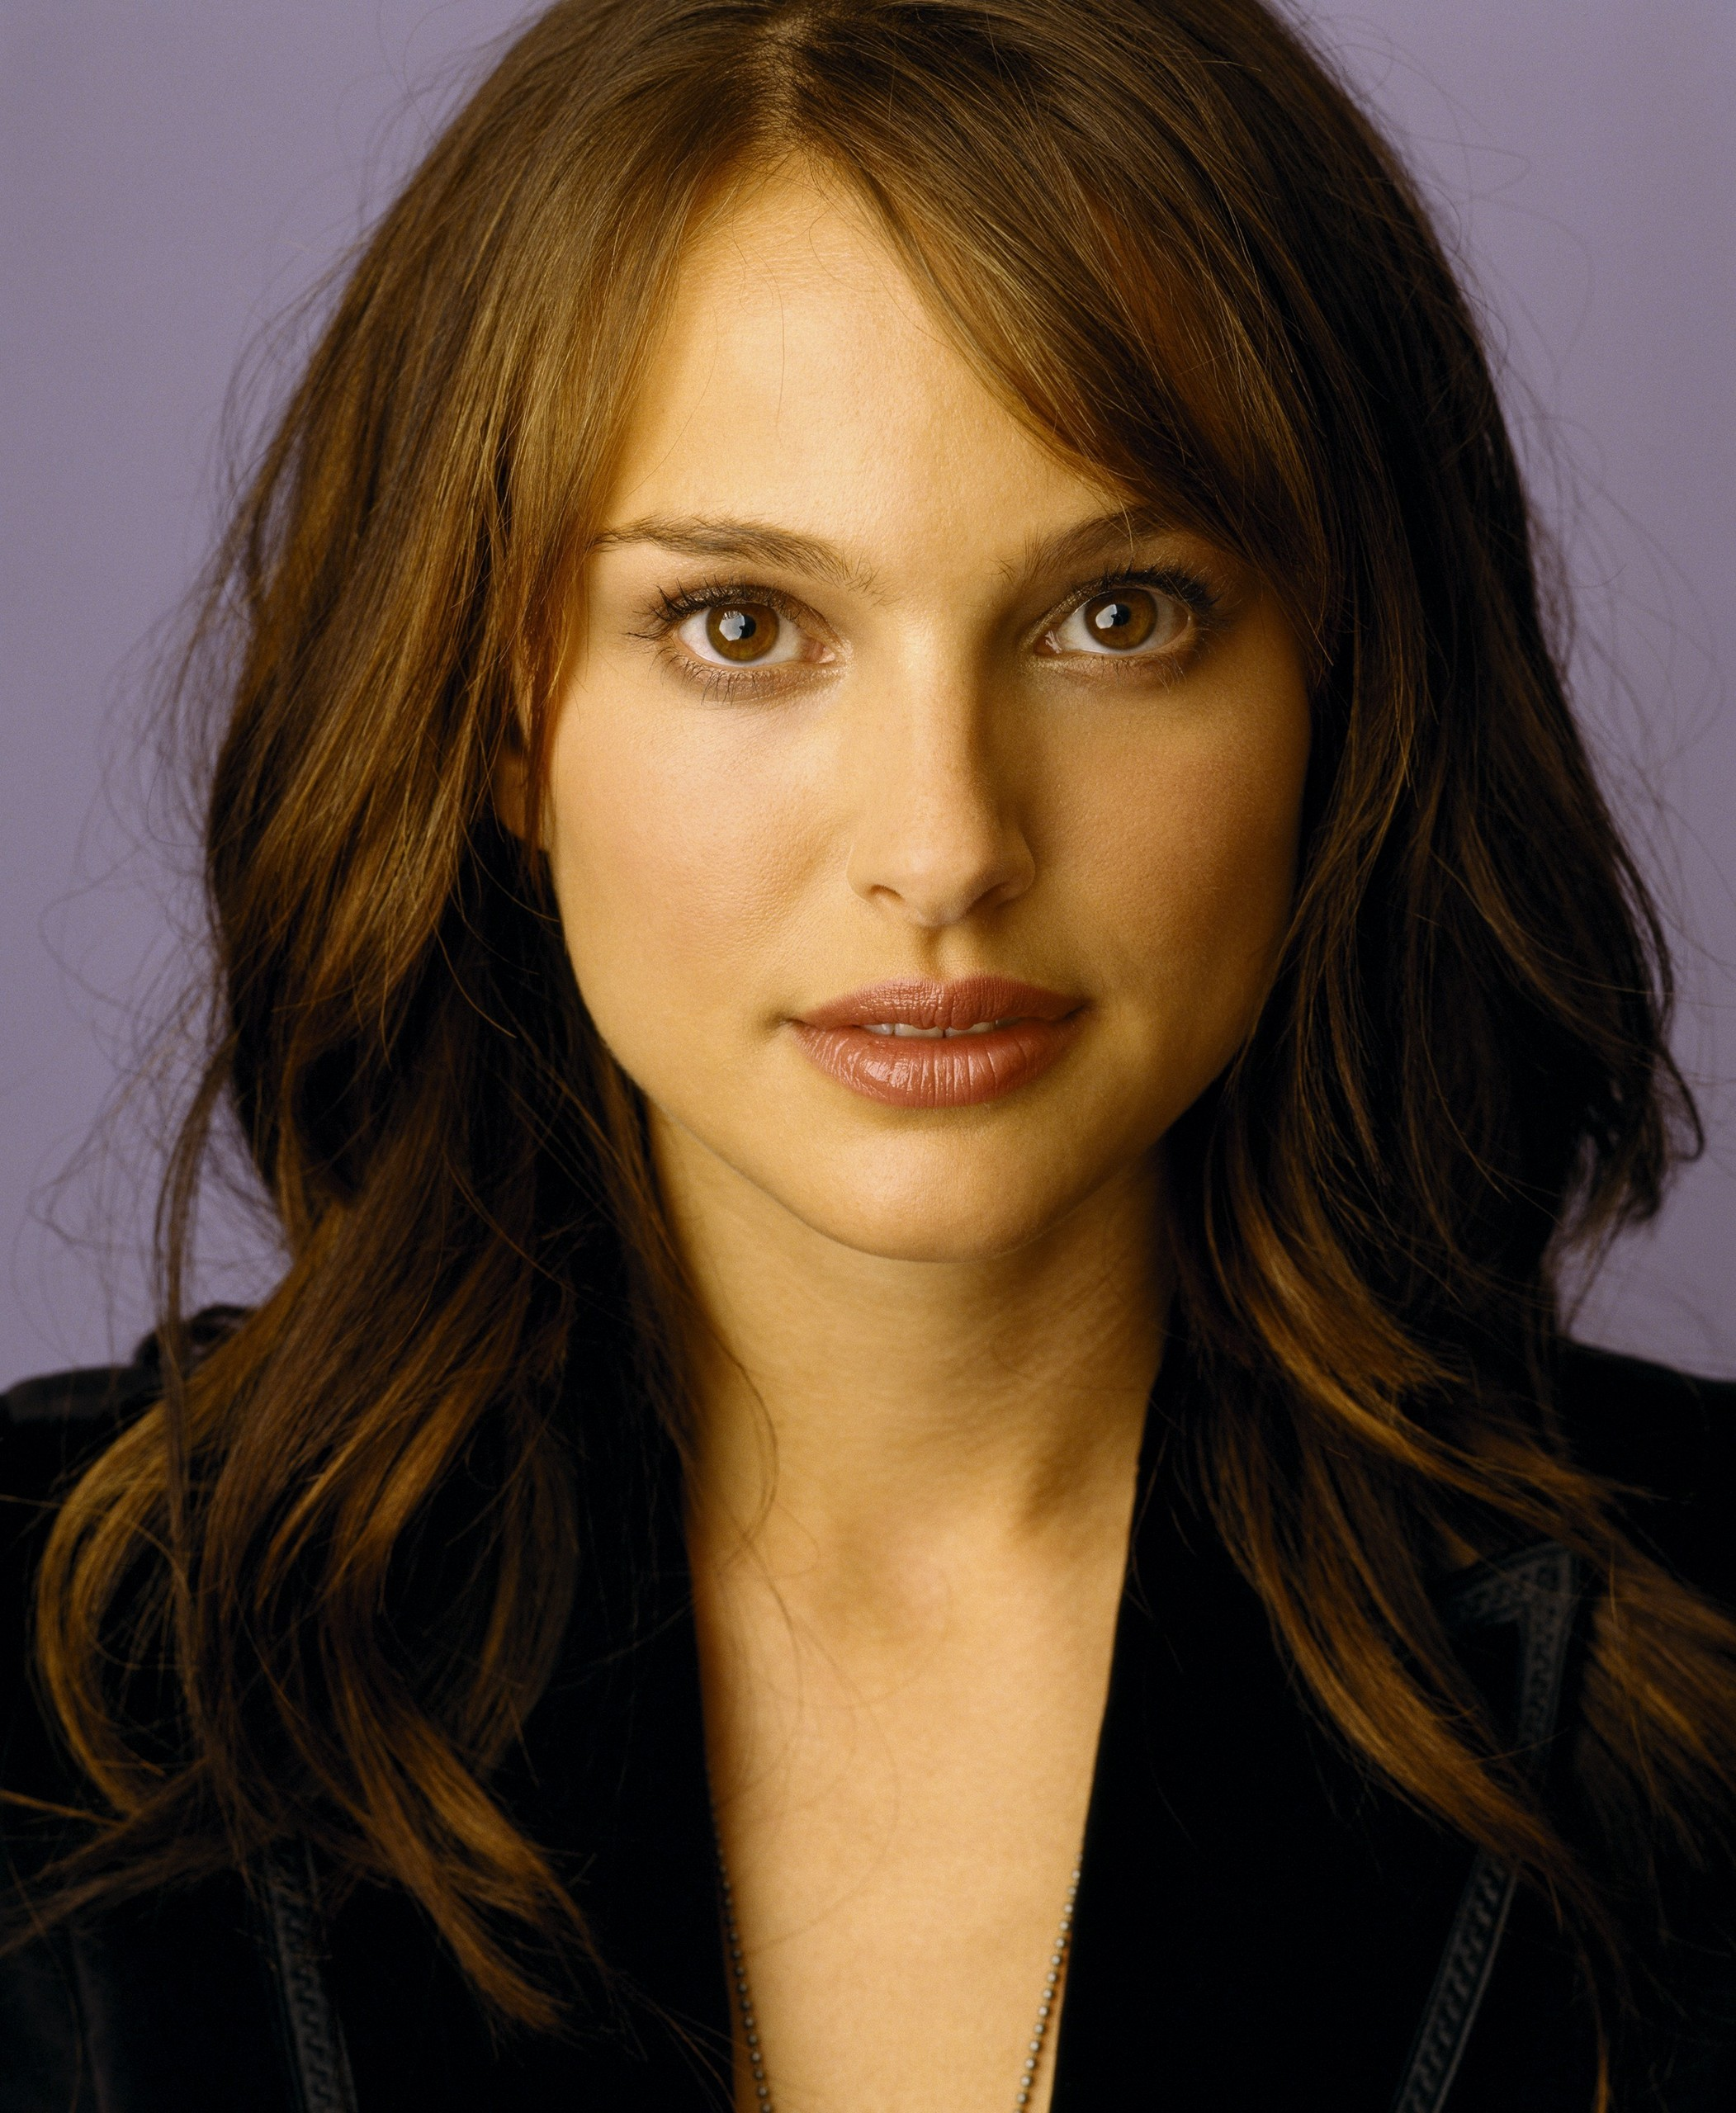 natalie portman - photo #18